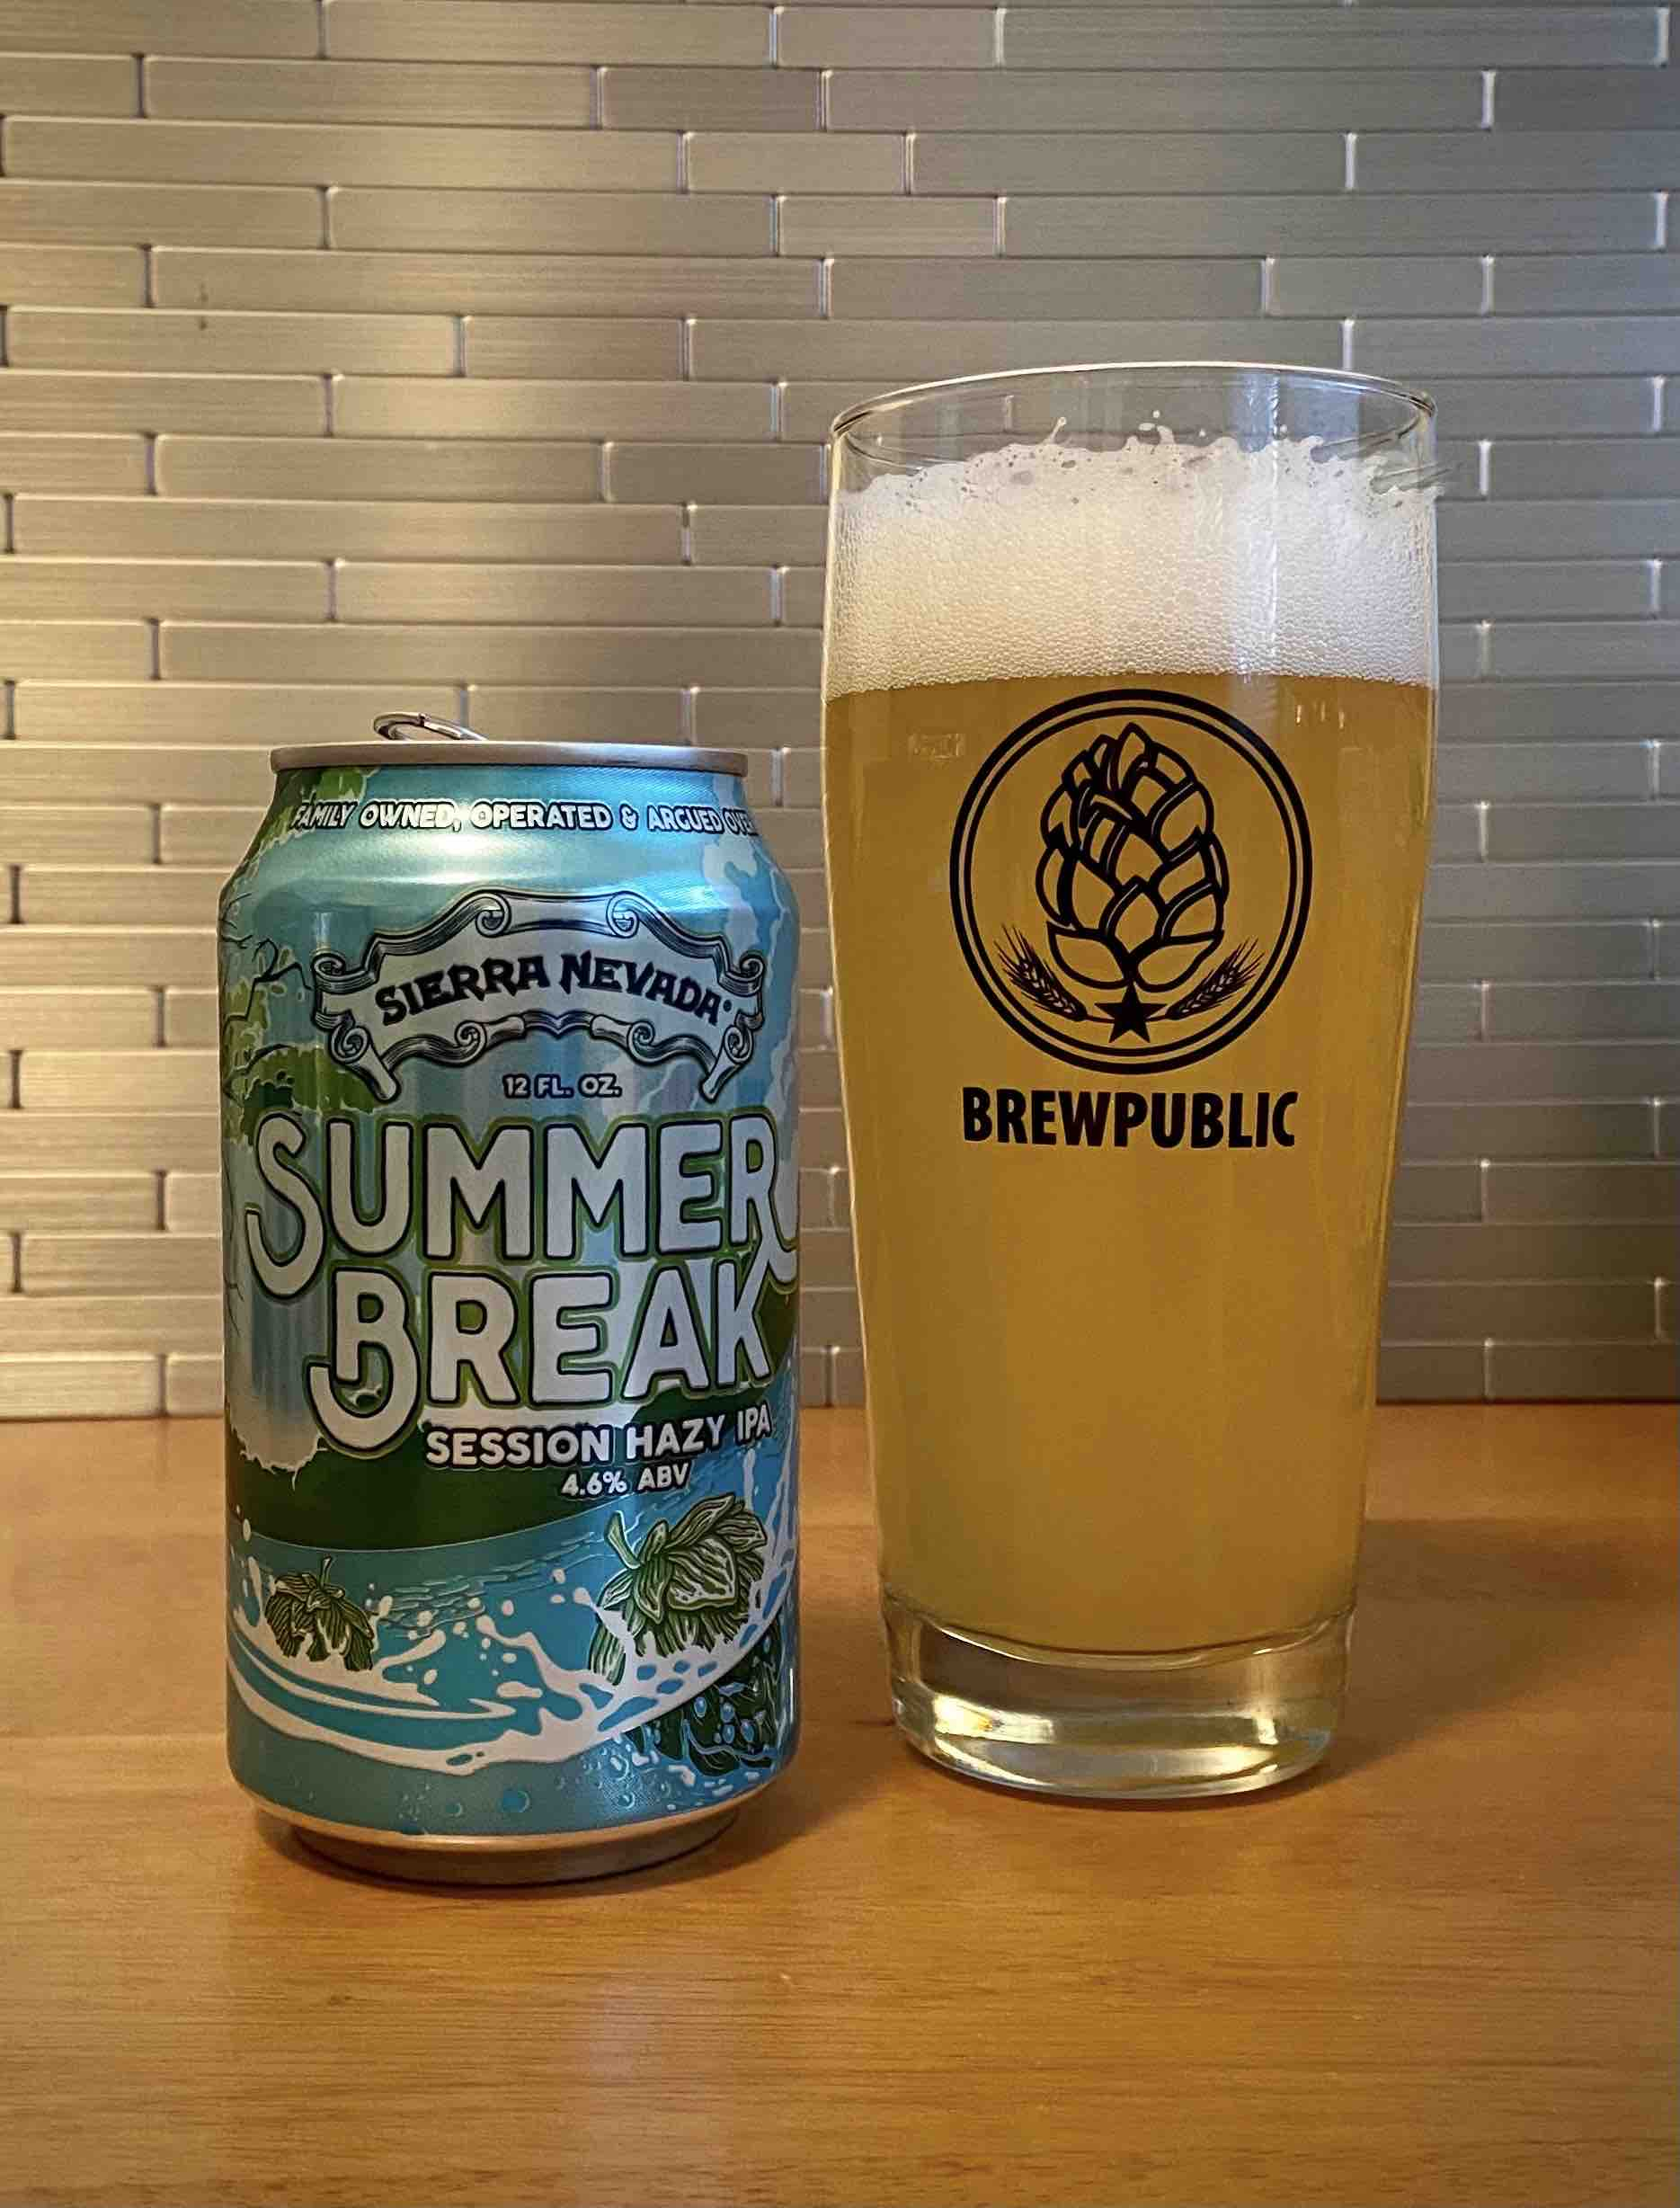 Sierra Nevada Summer Break Session Hazy IPA offers up juicy flavors in a sessionable beer for the summer.